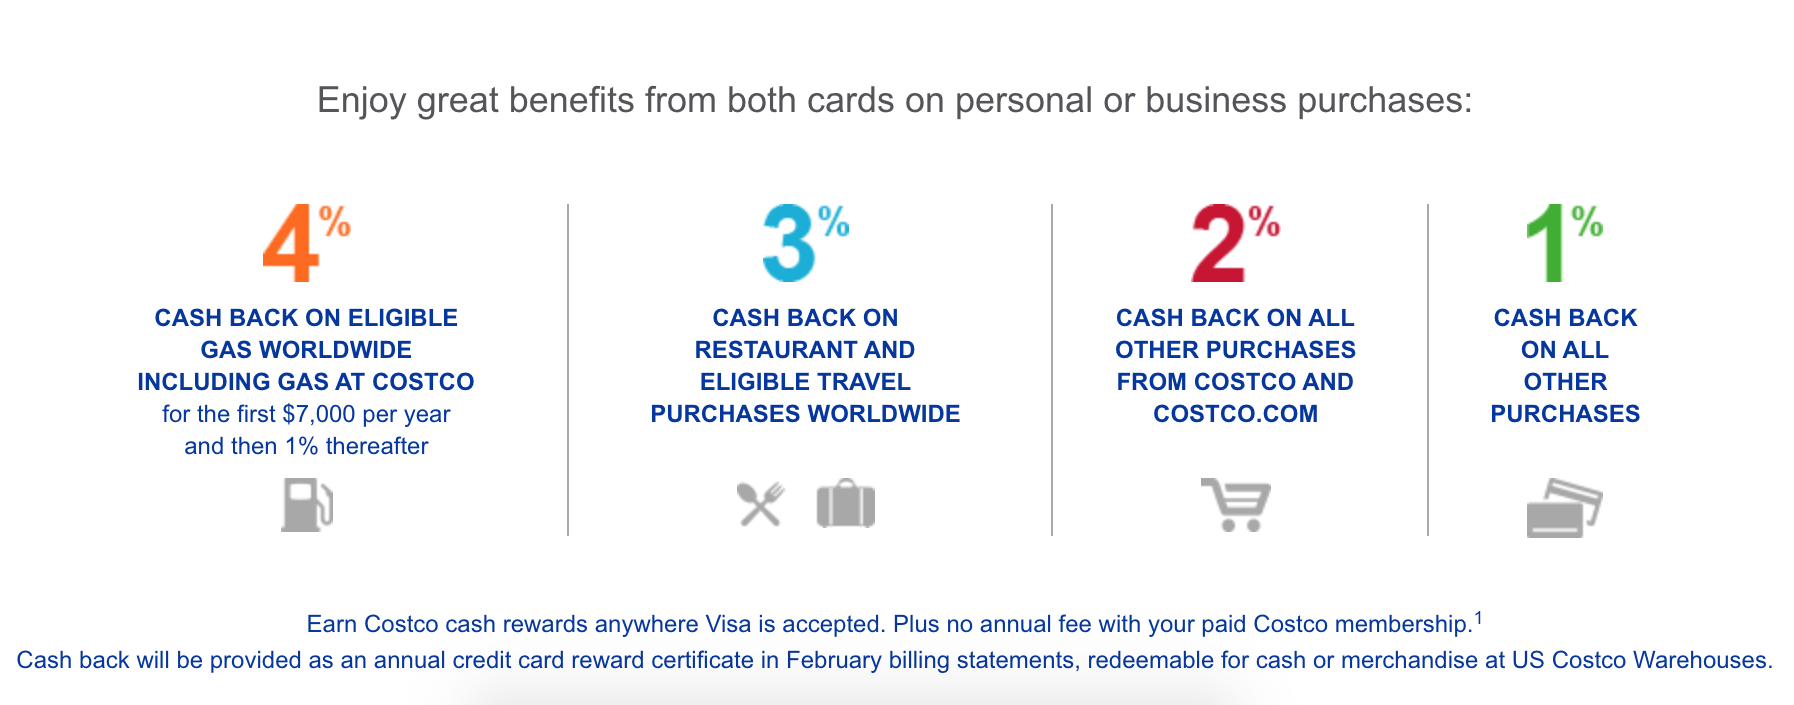 Costco Anywhere Visa® Card by Citi - Review [8]